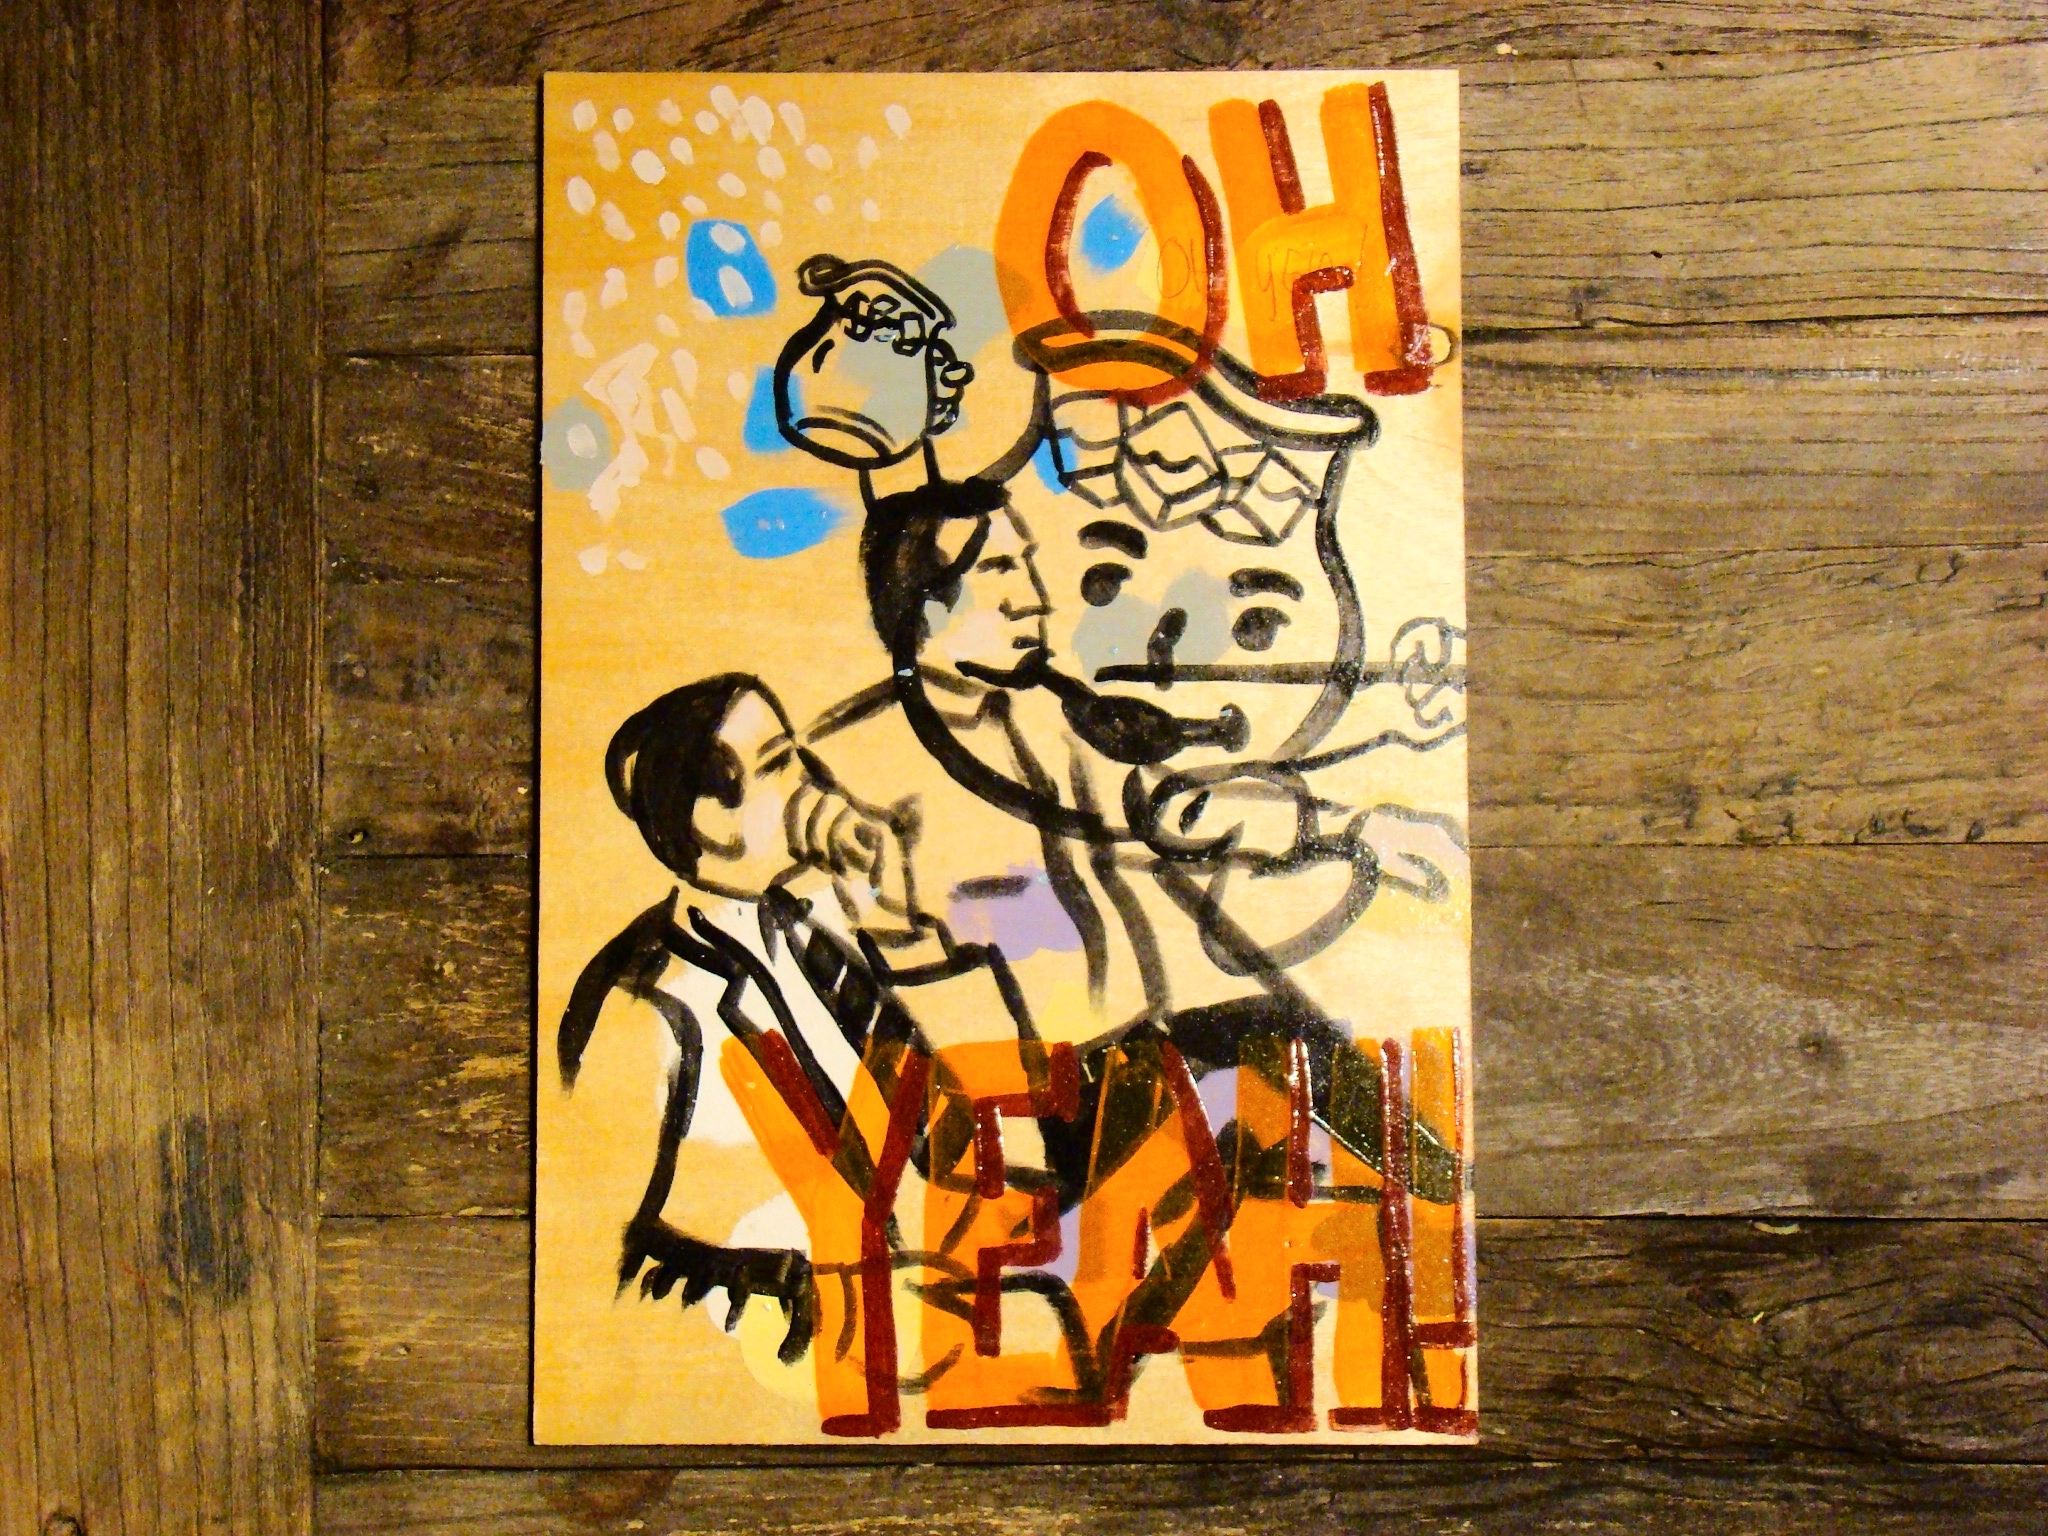 """Oh Yeah!"" by Quality Painters. 8""x12"" acrylic on birch panel. 2015."